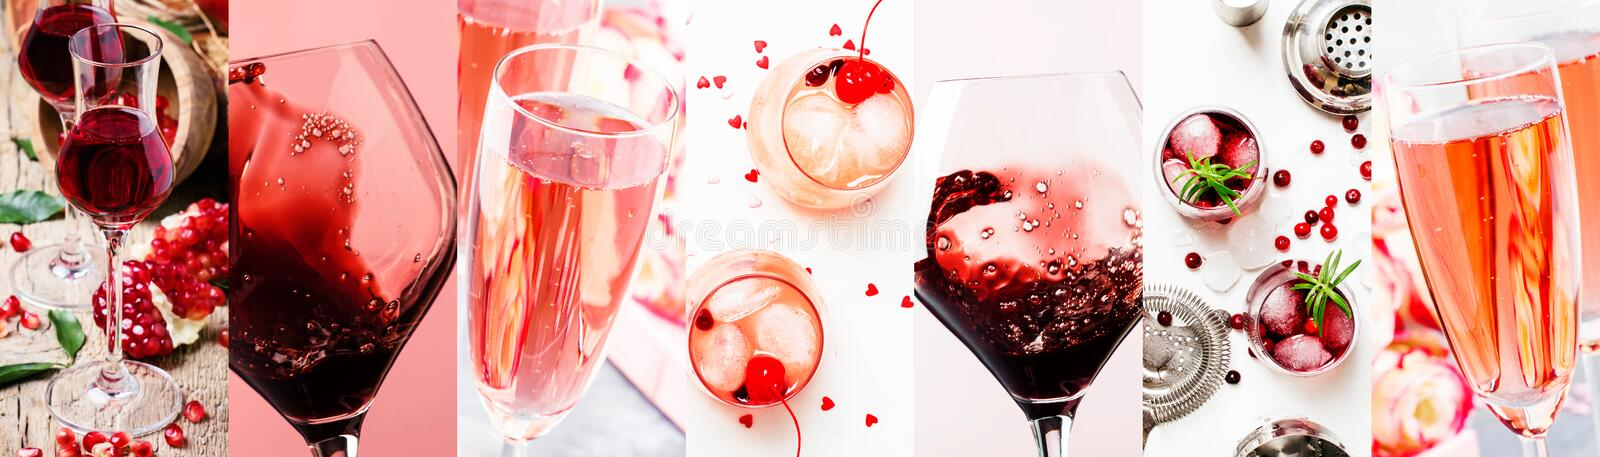 Red and pink alcoholic beverages, wine, champagne and liqueurs, berry and fruit cocktails. Photo collage. Still lilfe stock photography